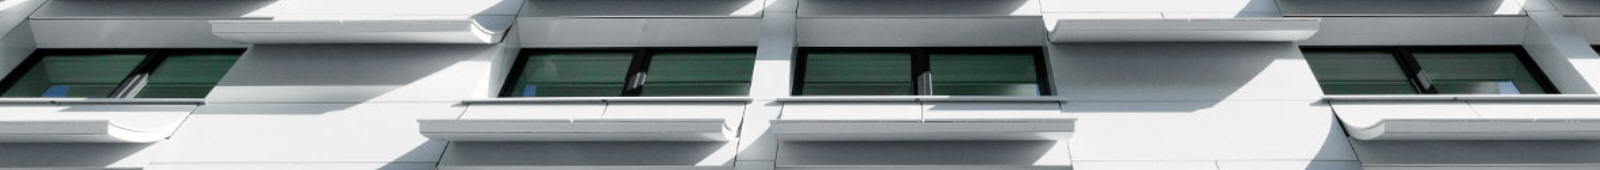 Fapinex - design and supply of bespoke façade systems in